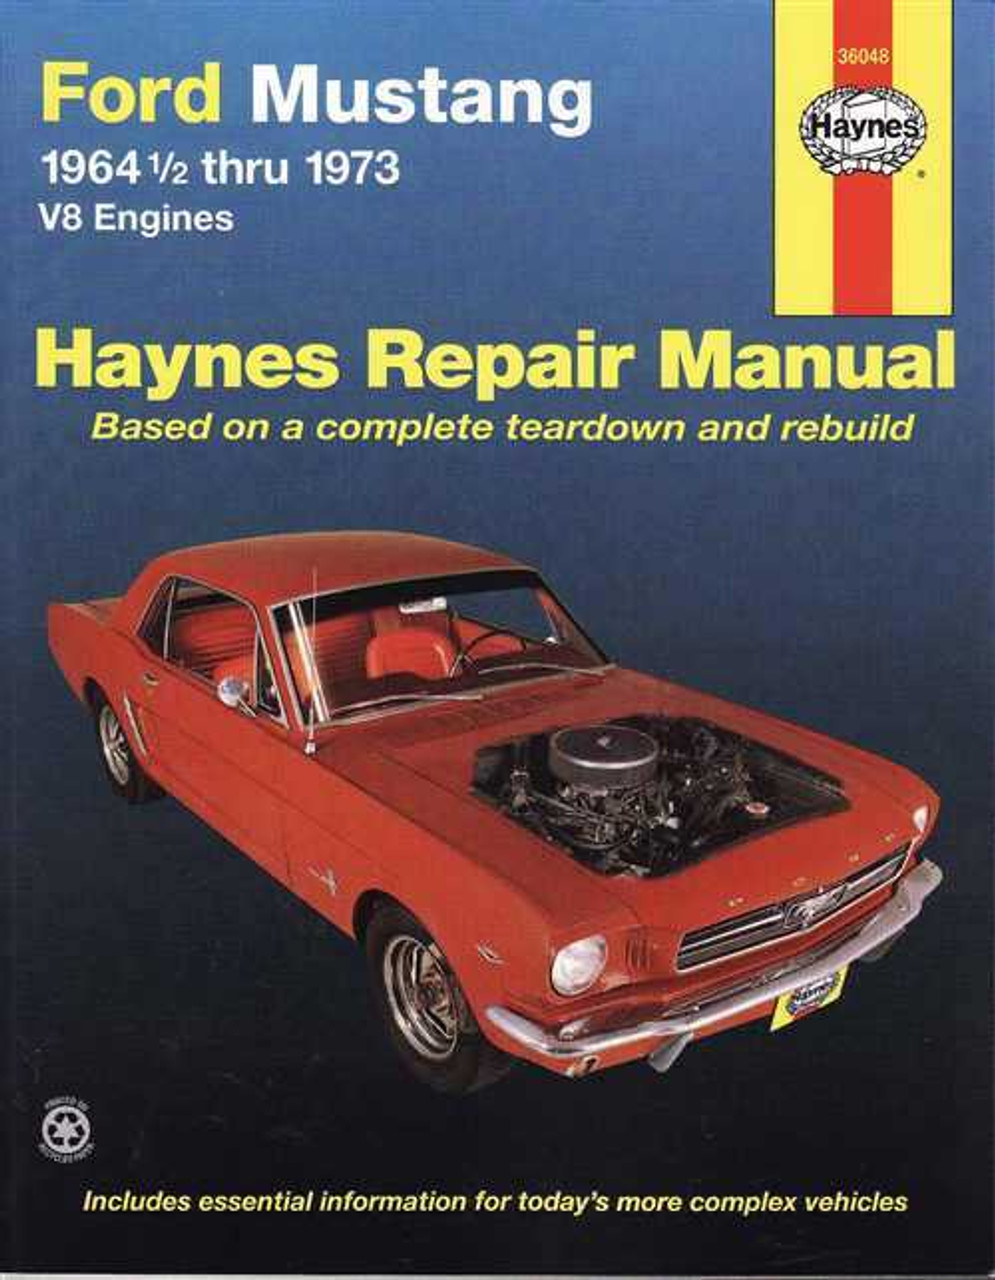 ford mustang v8 july 1964 1973 workshop manual rh automotobookshop com au 2005 ford mustang workshop manual 2005 ford mustang workshop manual